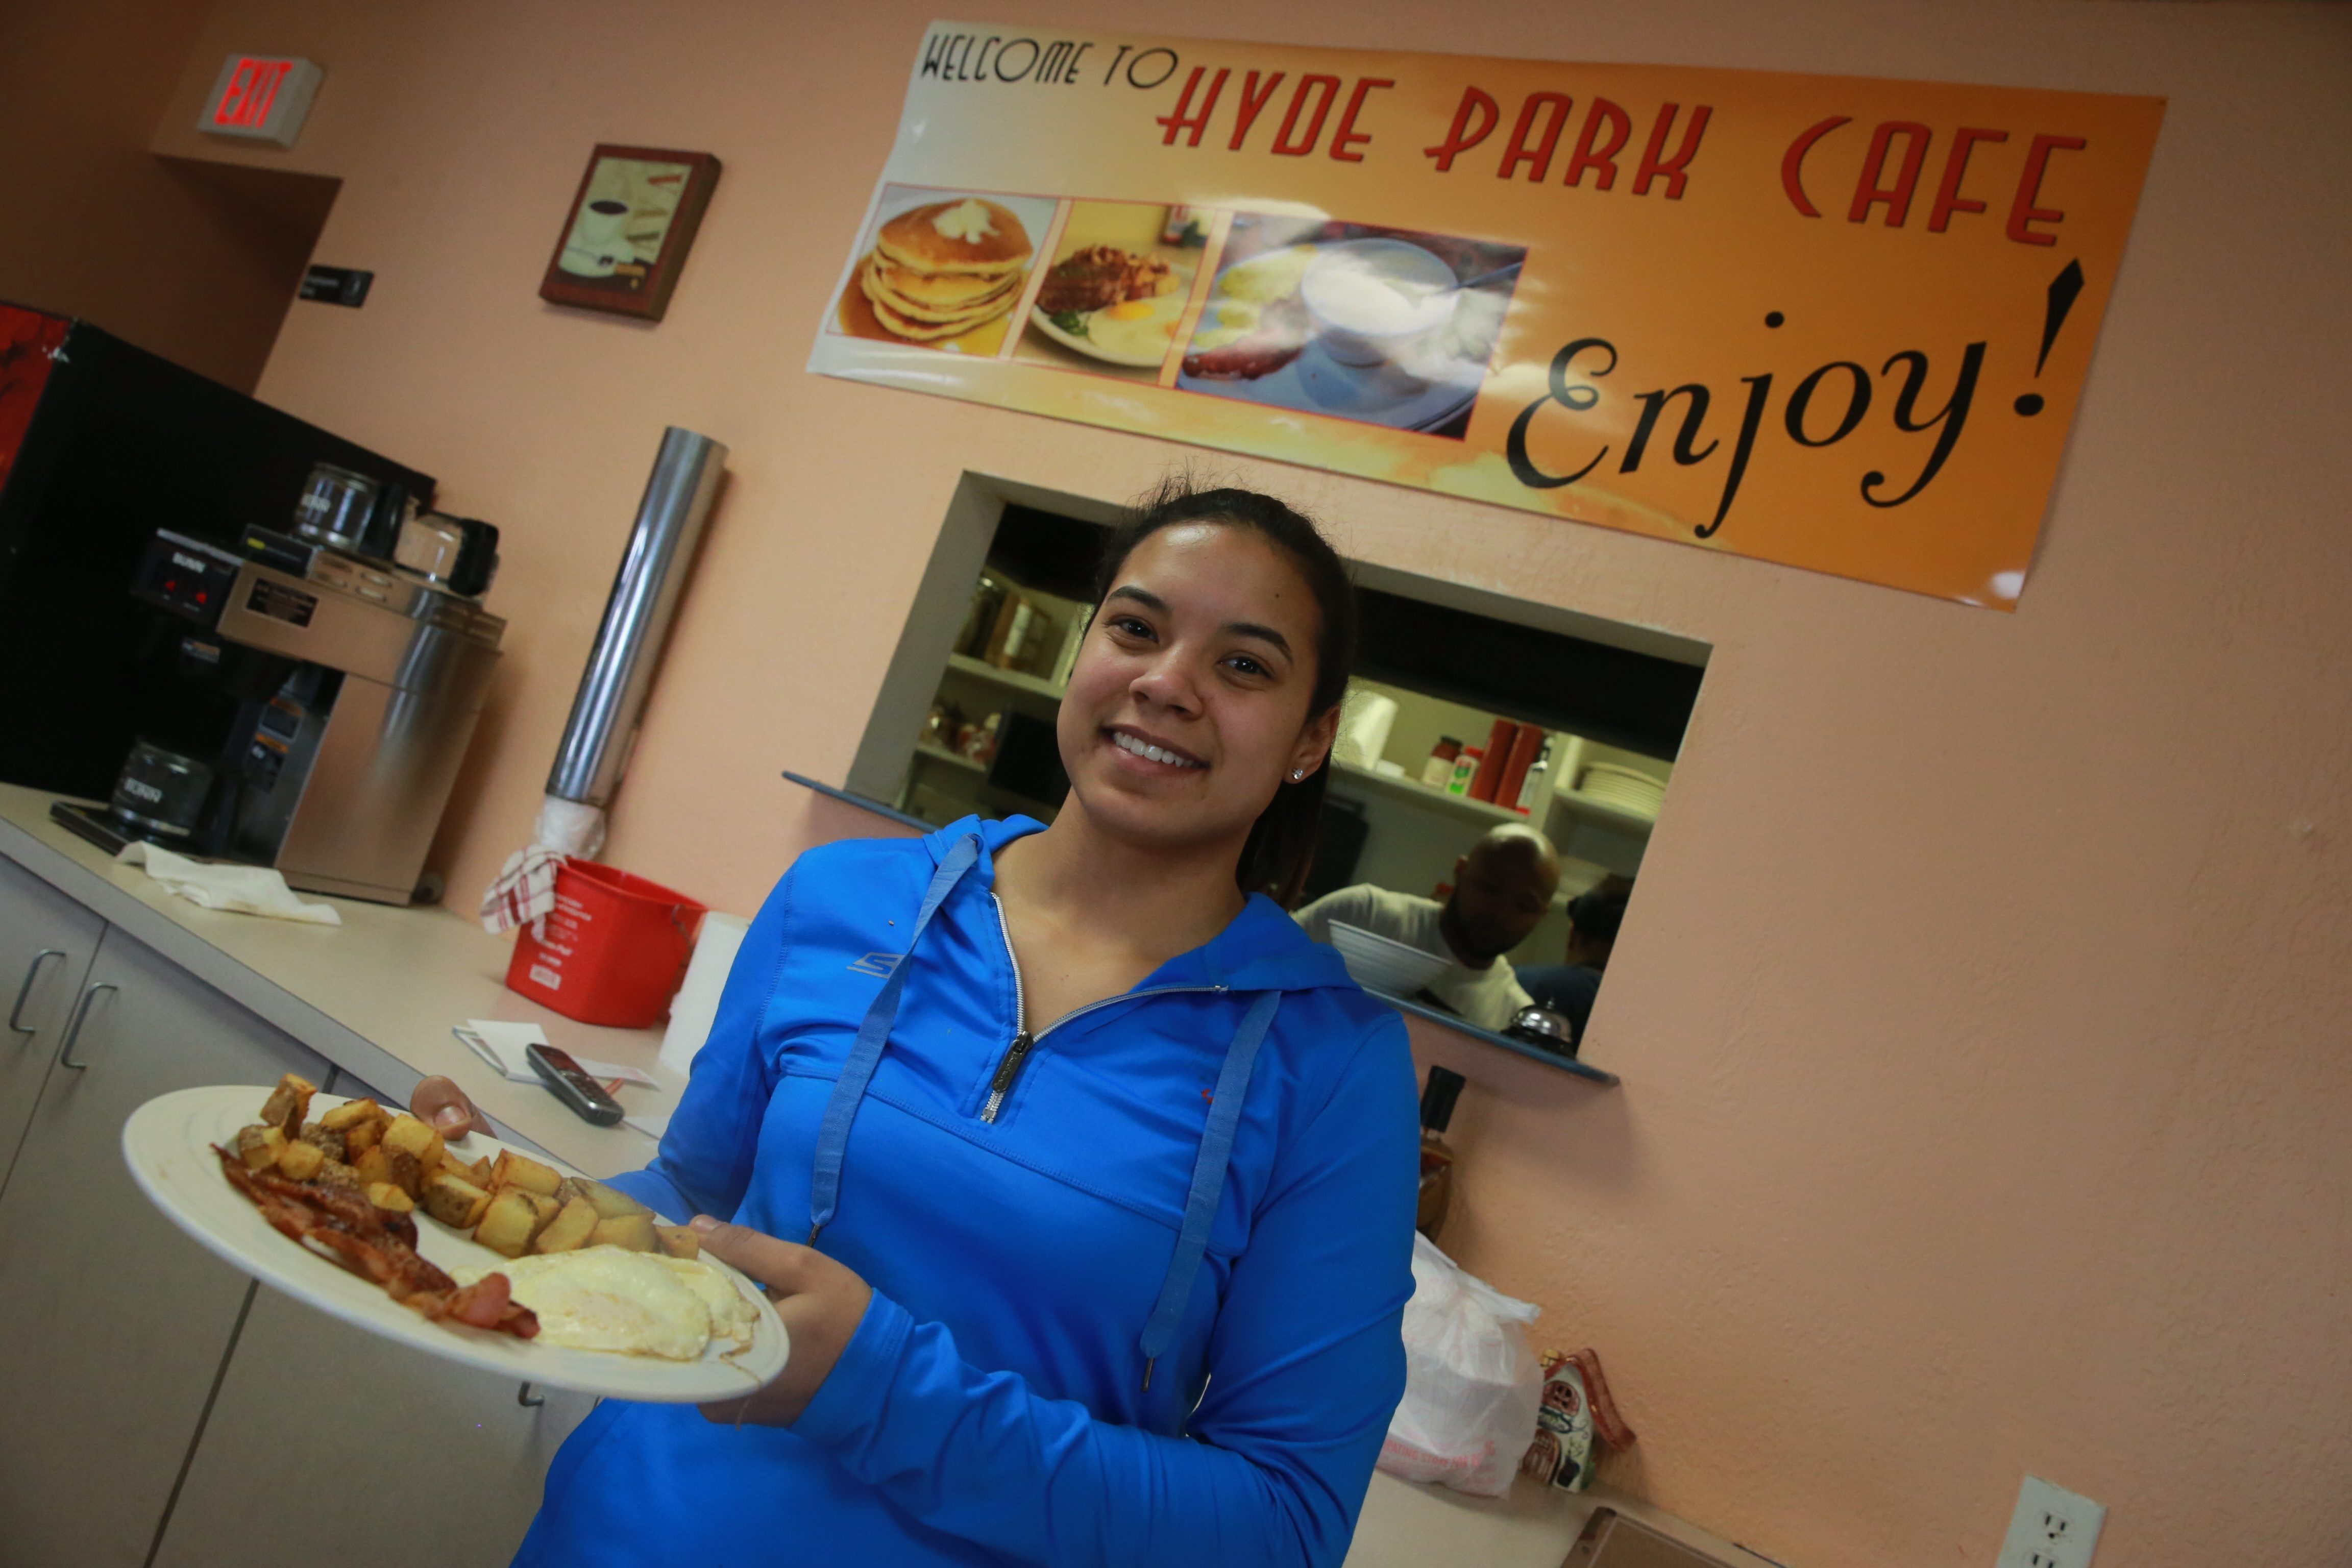 Waitress Marissa Smouse serves up a meal at Niagara Falls' Hyde Park Cafe, a warm and cozy restaurant that specializes in Southern food.